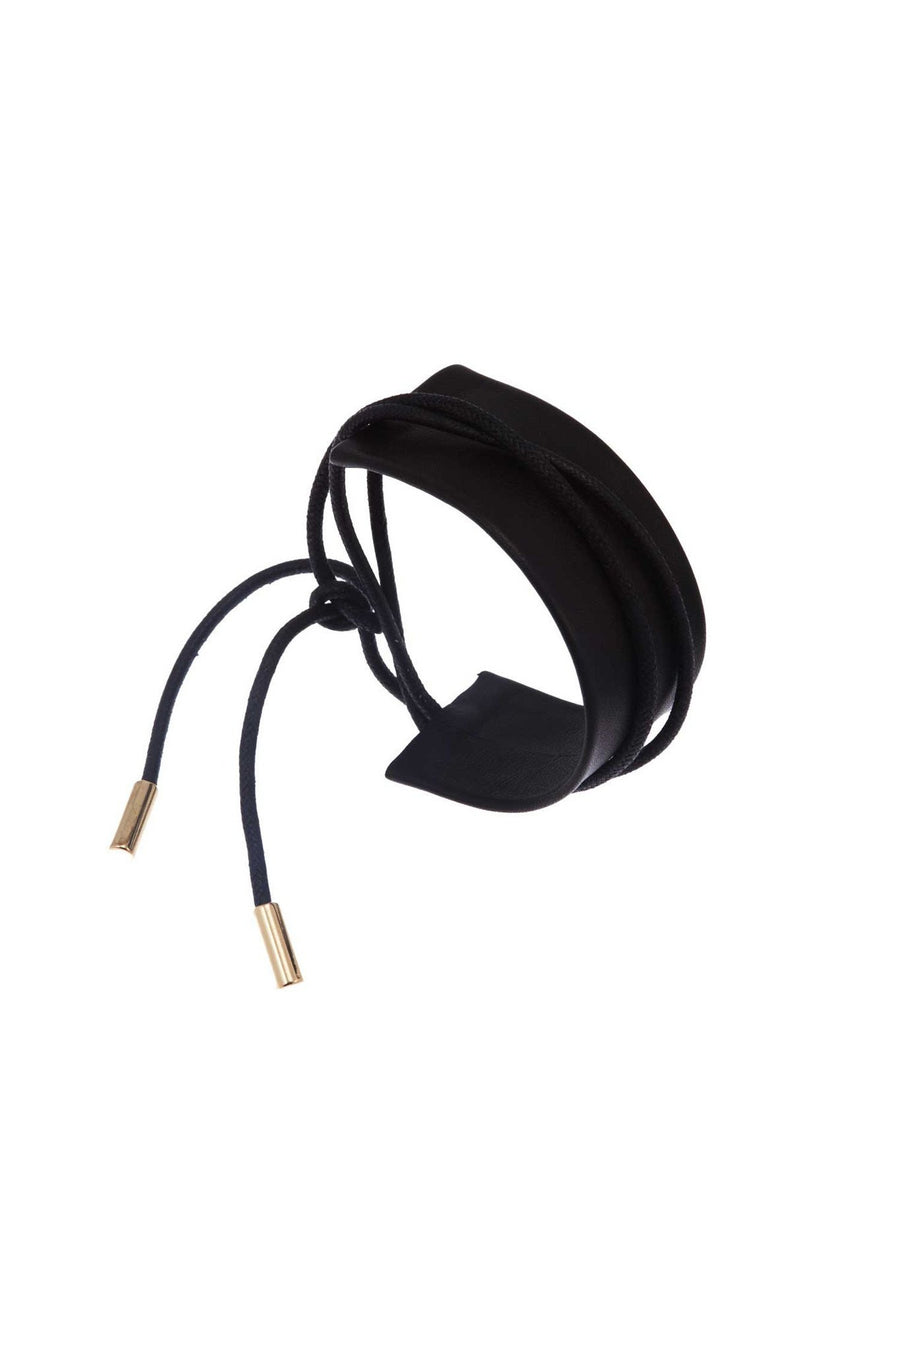 Amona Leather Cuff / Choker